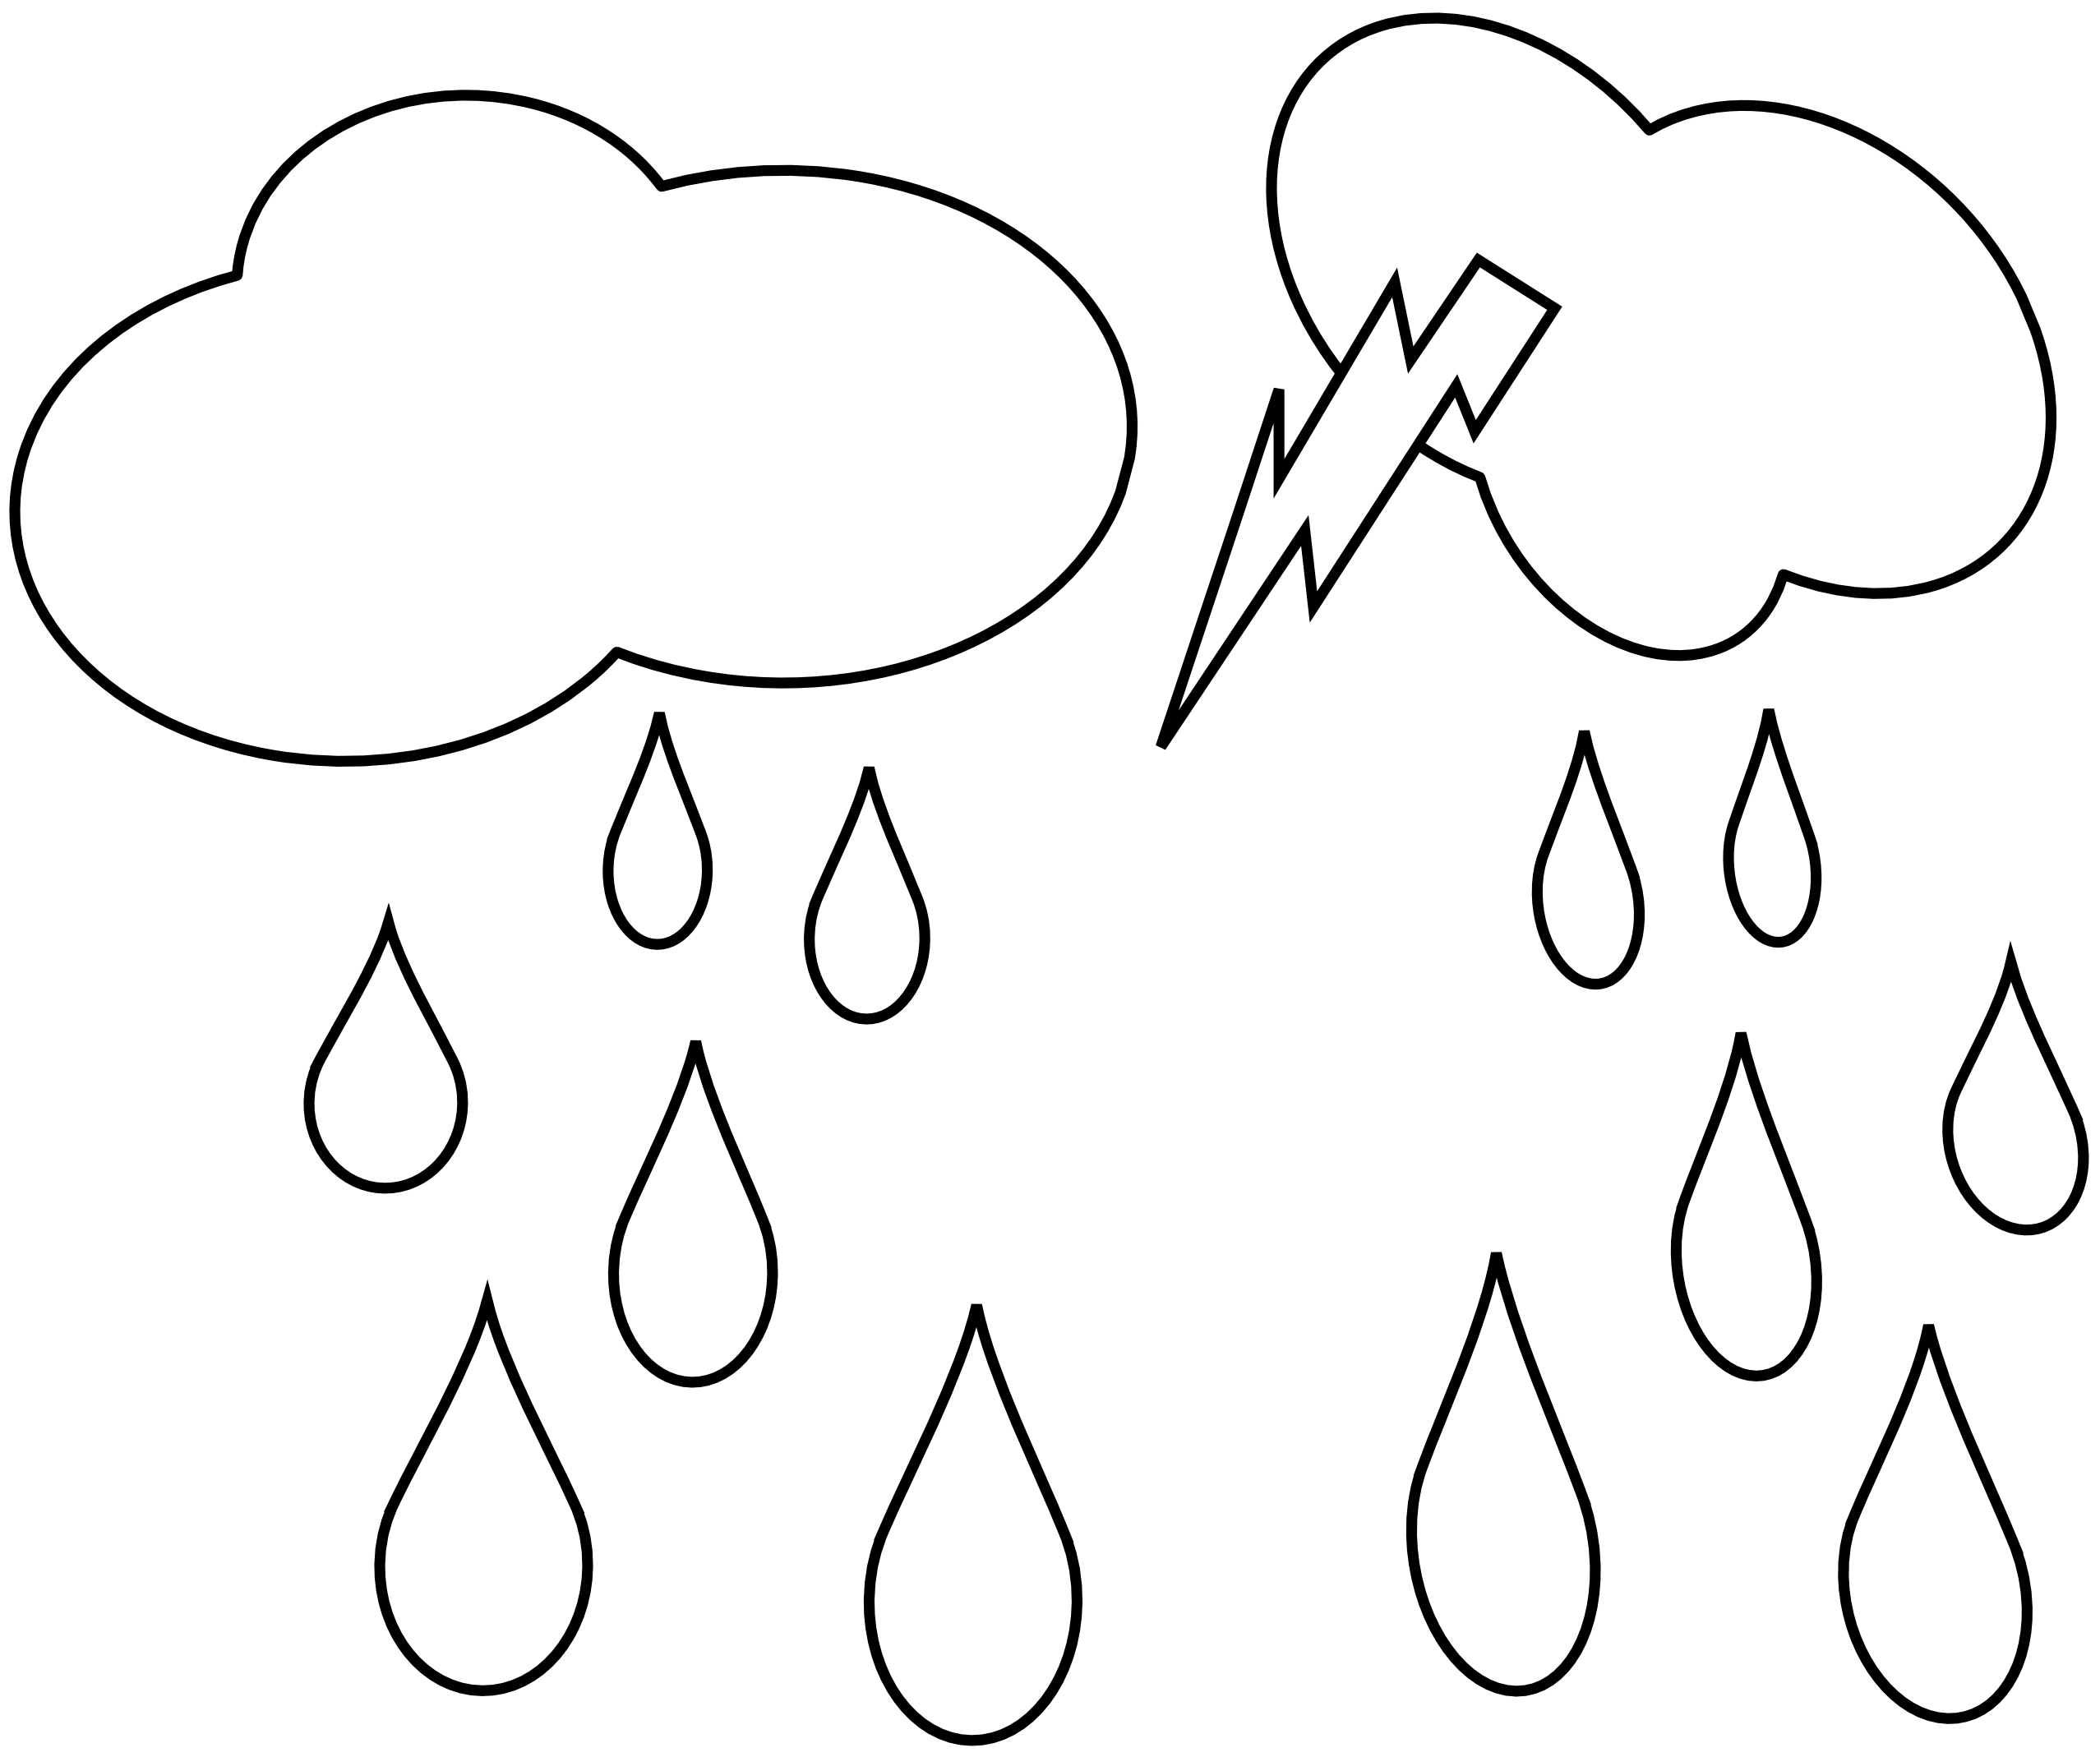 Clouds and sun clipart black and white clip art black and white download Rain Cloud Clipart Black And White | Clipart Panda - Free Clipart Images clip art black and white download